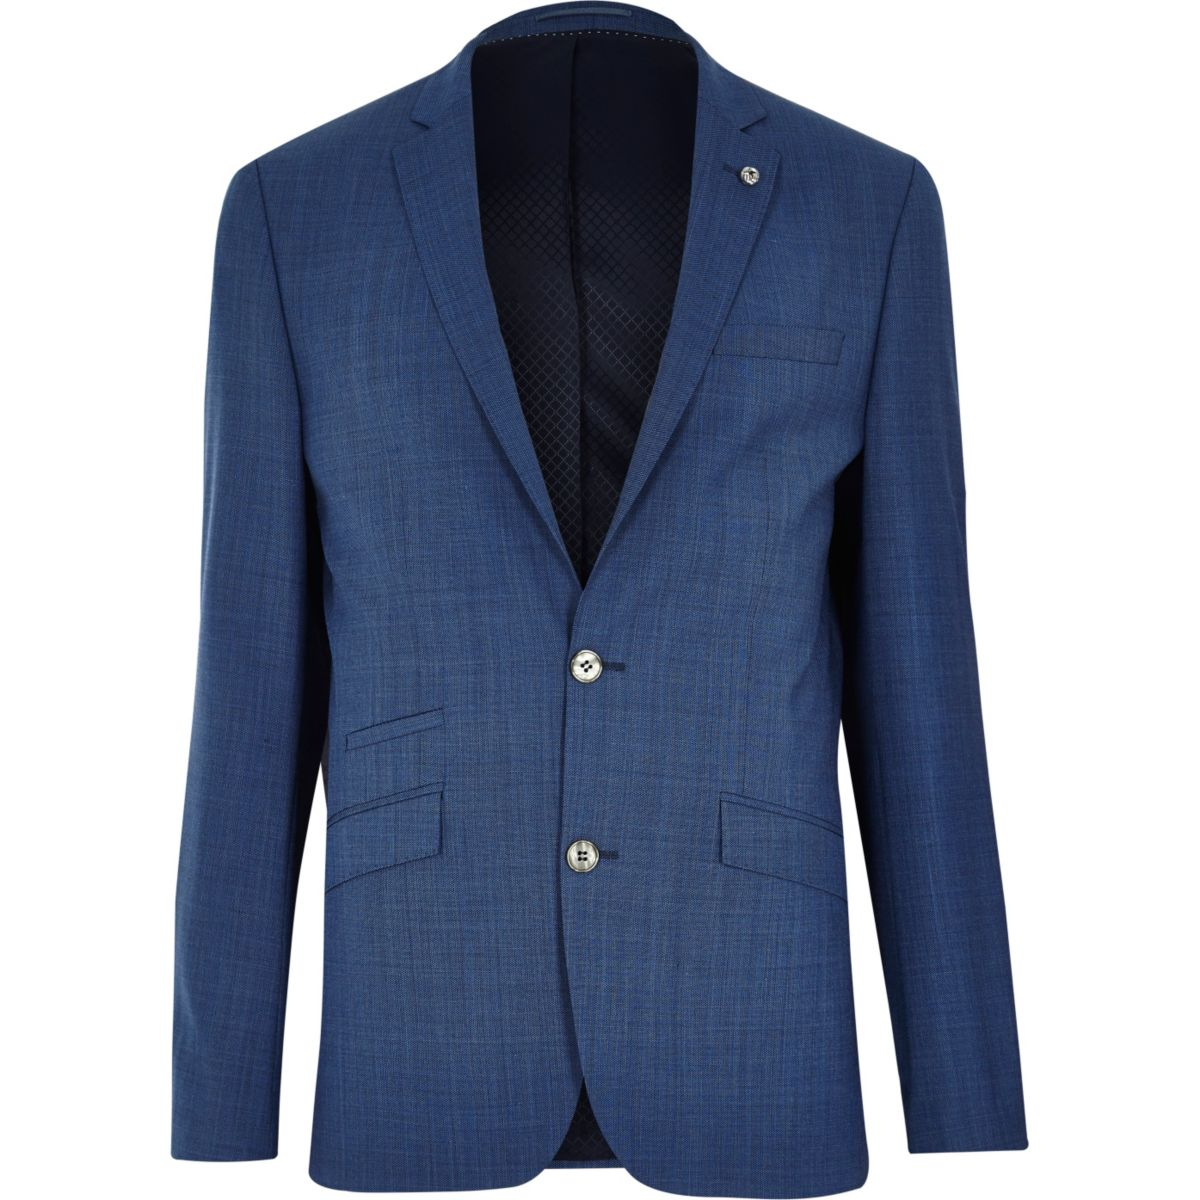 Blue textured slim suit jacket